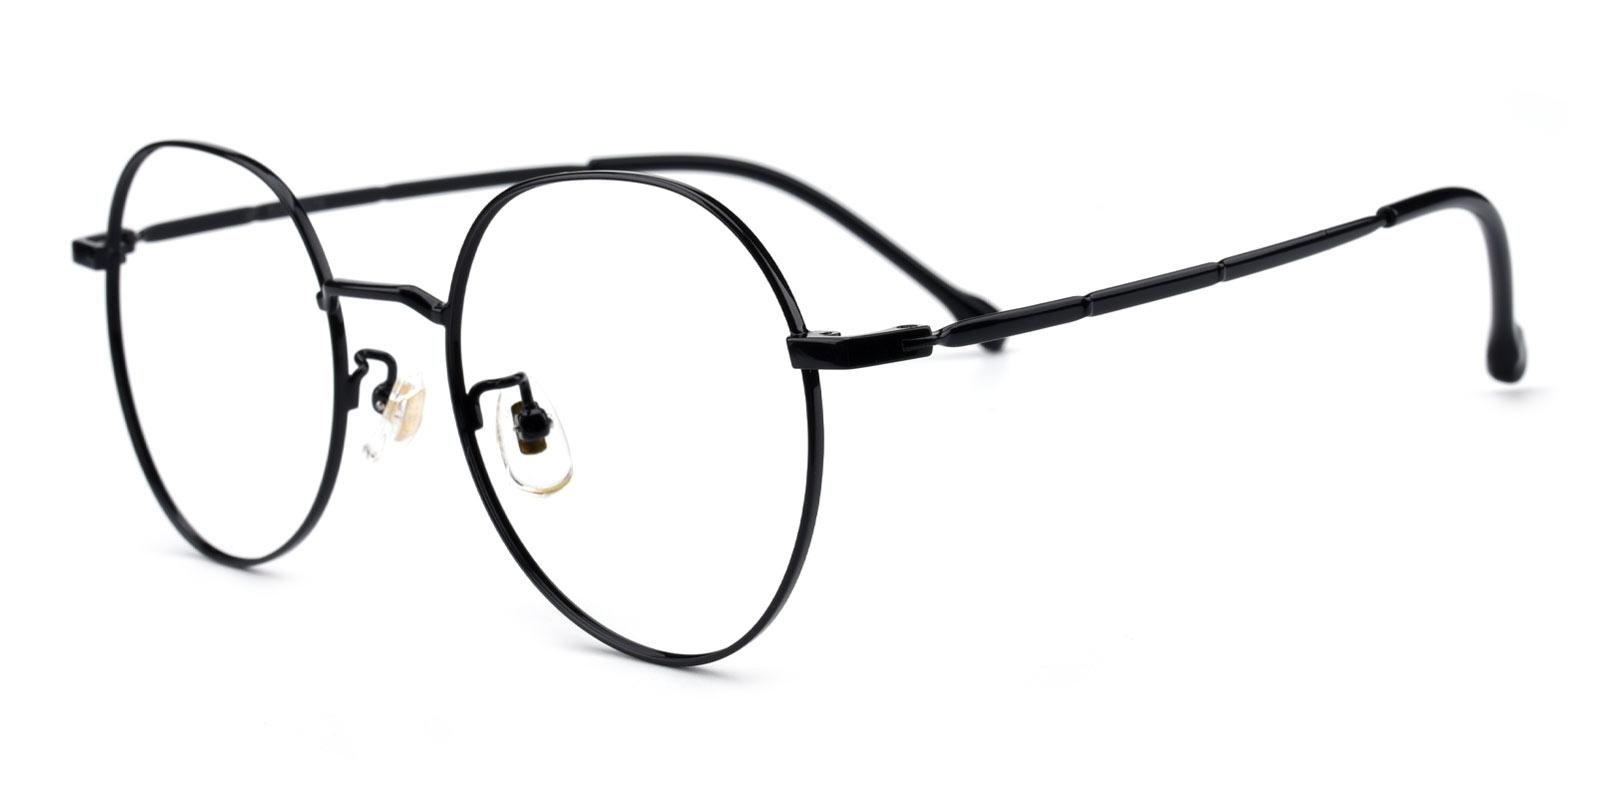 Berkeley-Black-Round-Titanium-Eyeglasses-additional1